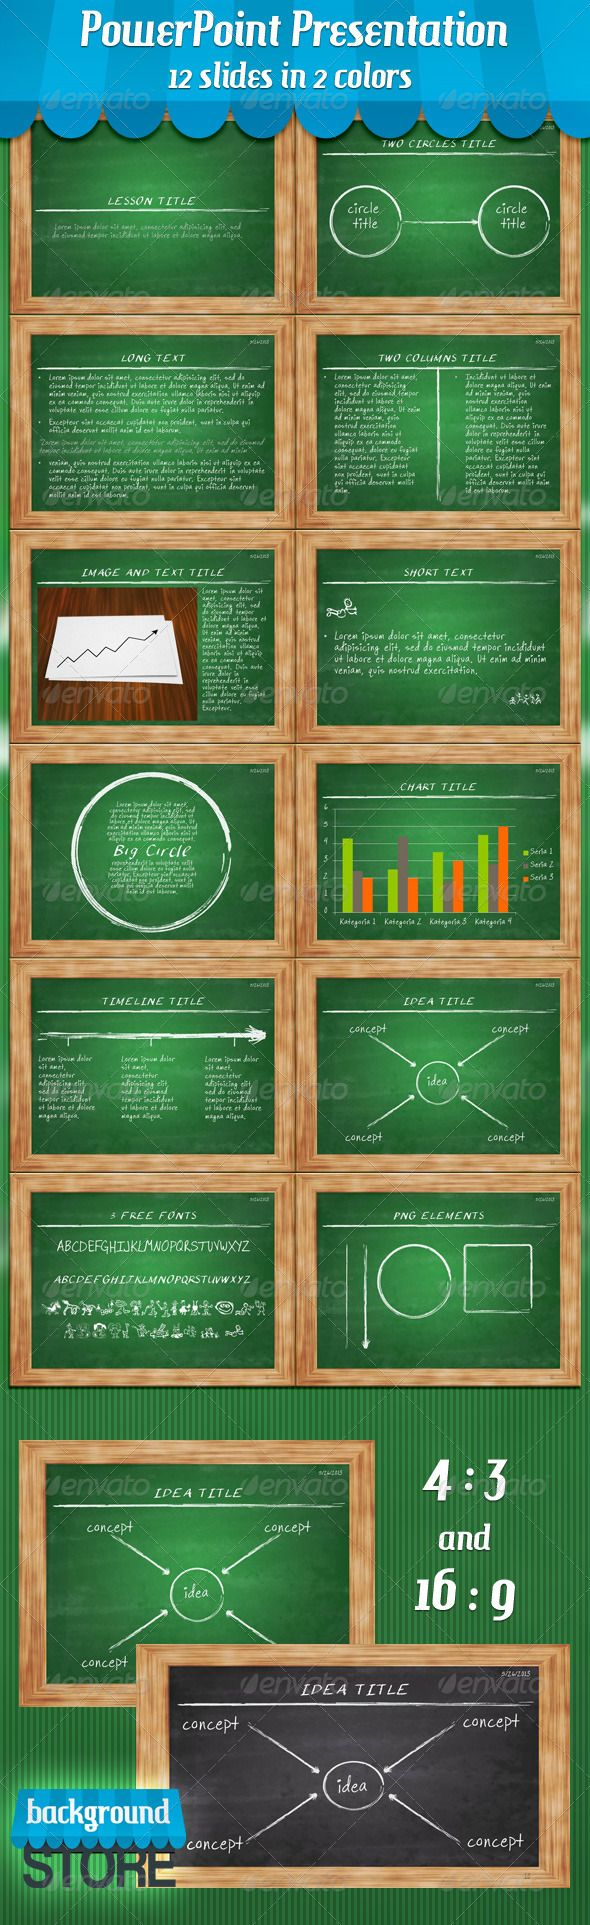 Blackboard PowerPoint Presentation  #GraphicRiver         Blackboard PowerPoint Presentation witch editable slides! 12 Power Point Slides in 2 colors (.ppt .pptx) 2 Presentation Formats: 4×3 and 16×9 HD JPG Background in 2 colors (3000×2500 150dpi) 4 Png Elements that you can use in your presentation Live Preview:  .slideshare /BackgroundStore/blackboard-powerpoint-template      Created: 30May13 PixelDimensions: 3000x2500 PresentationFilesIncluded: PowerpointPPT #PowerpointPPTX #JPGImage…